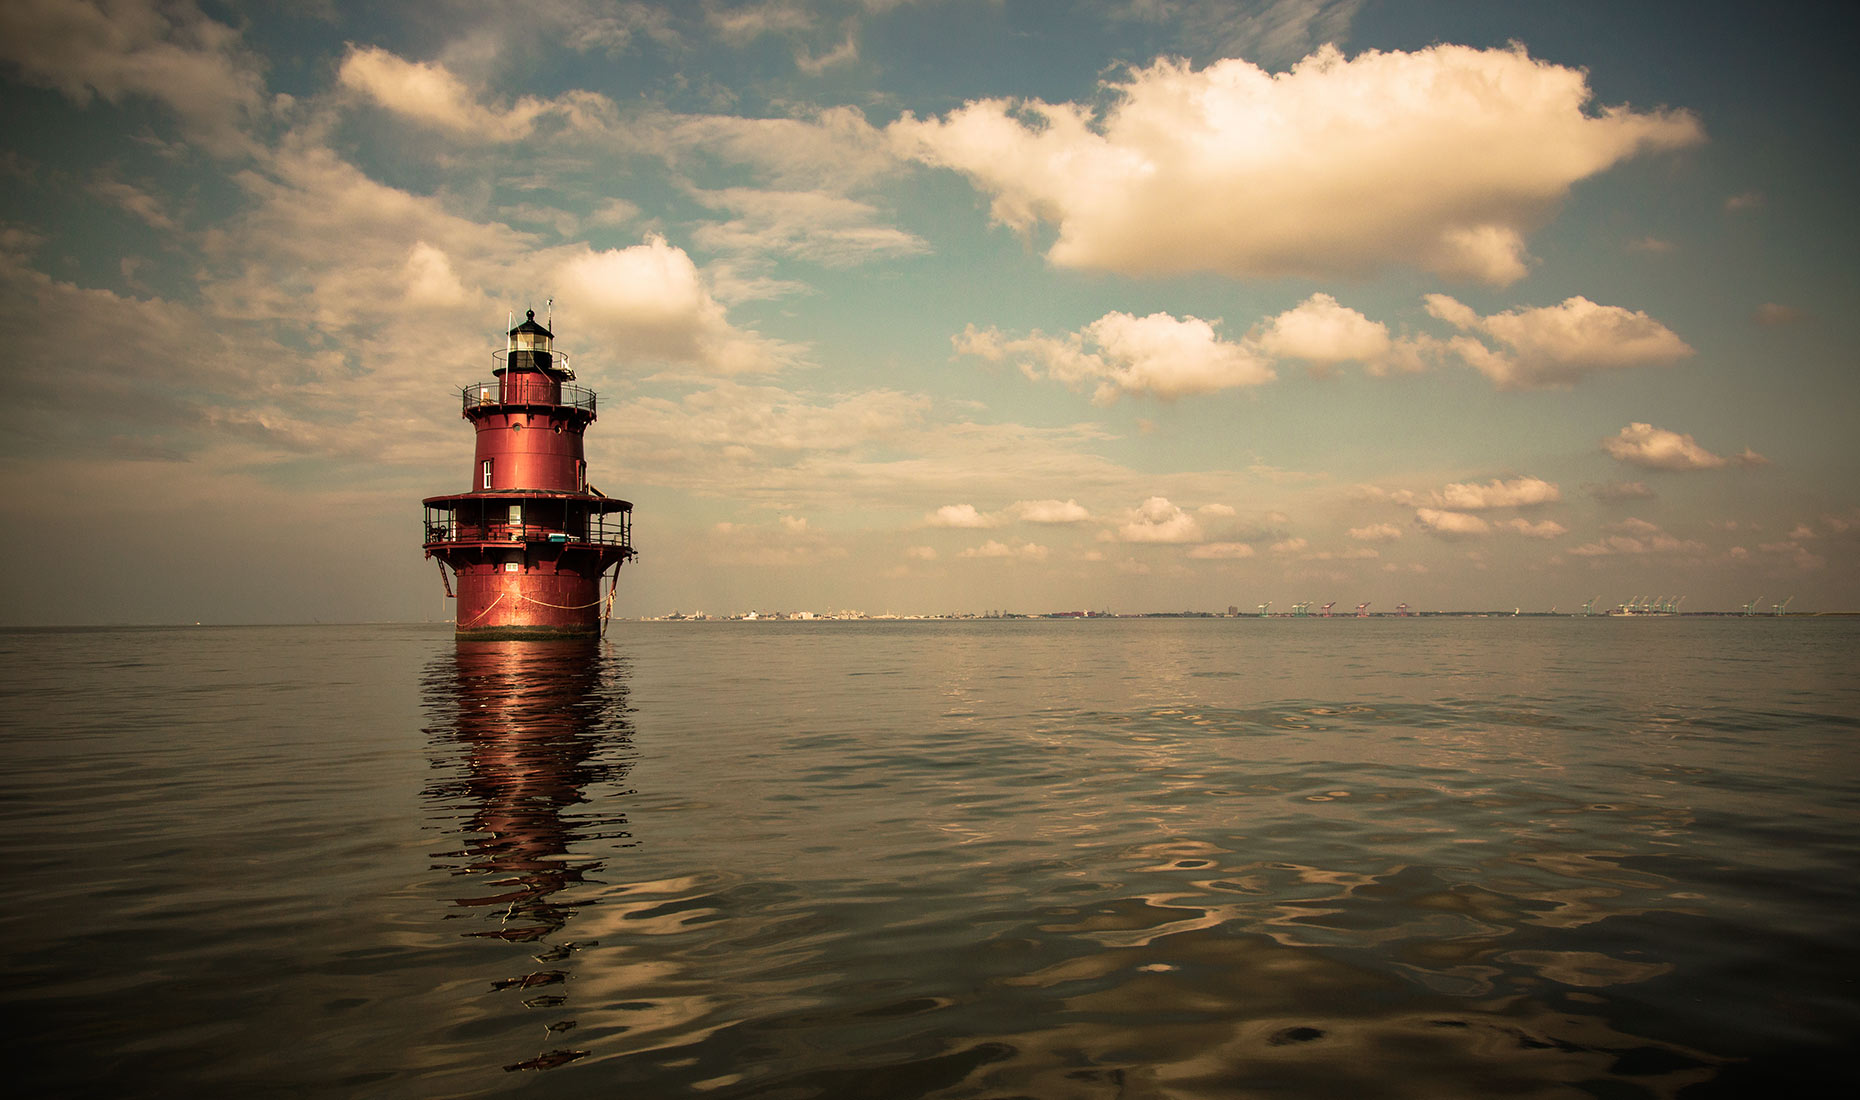 lighthouse, James River, Virginia, clouds